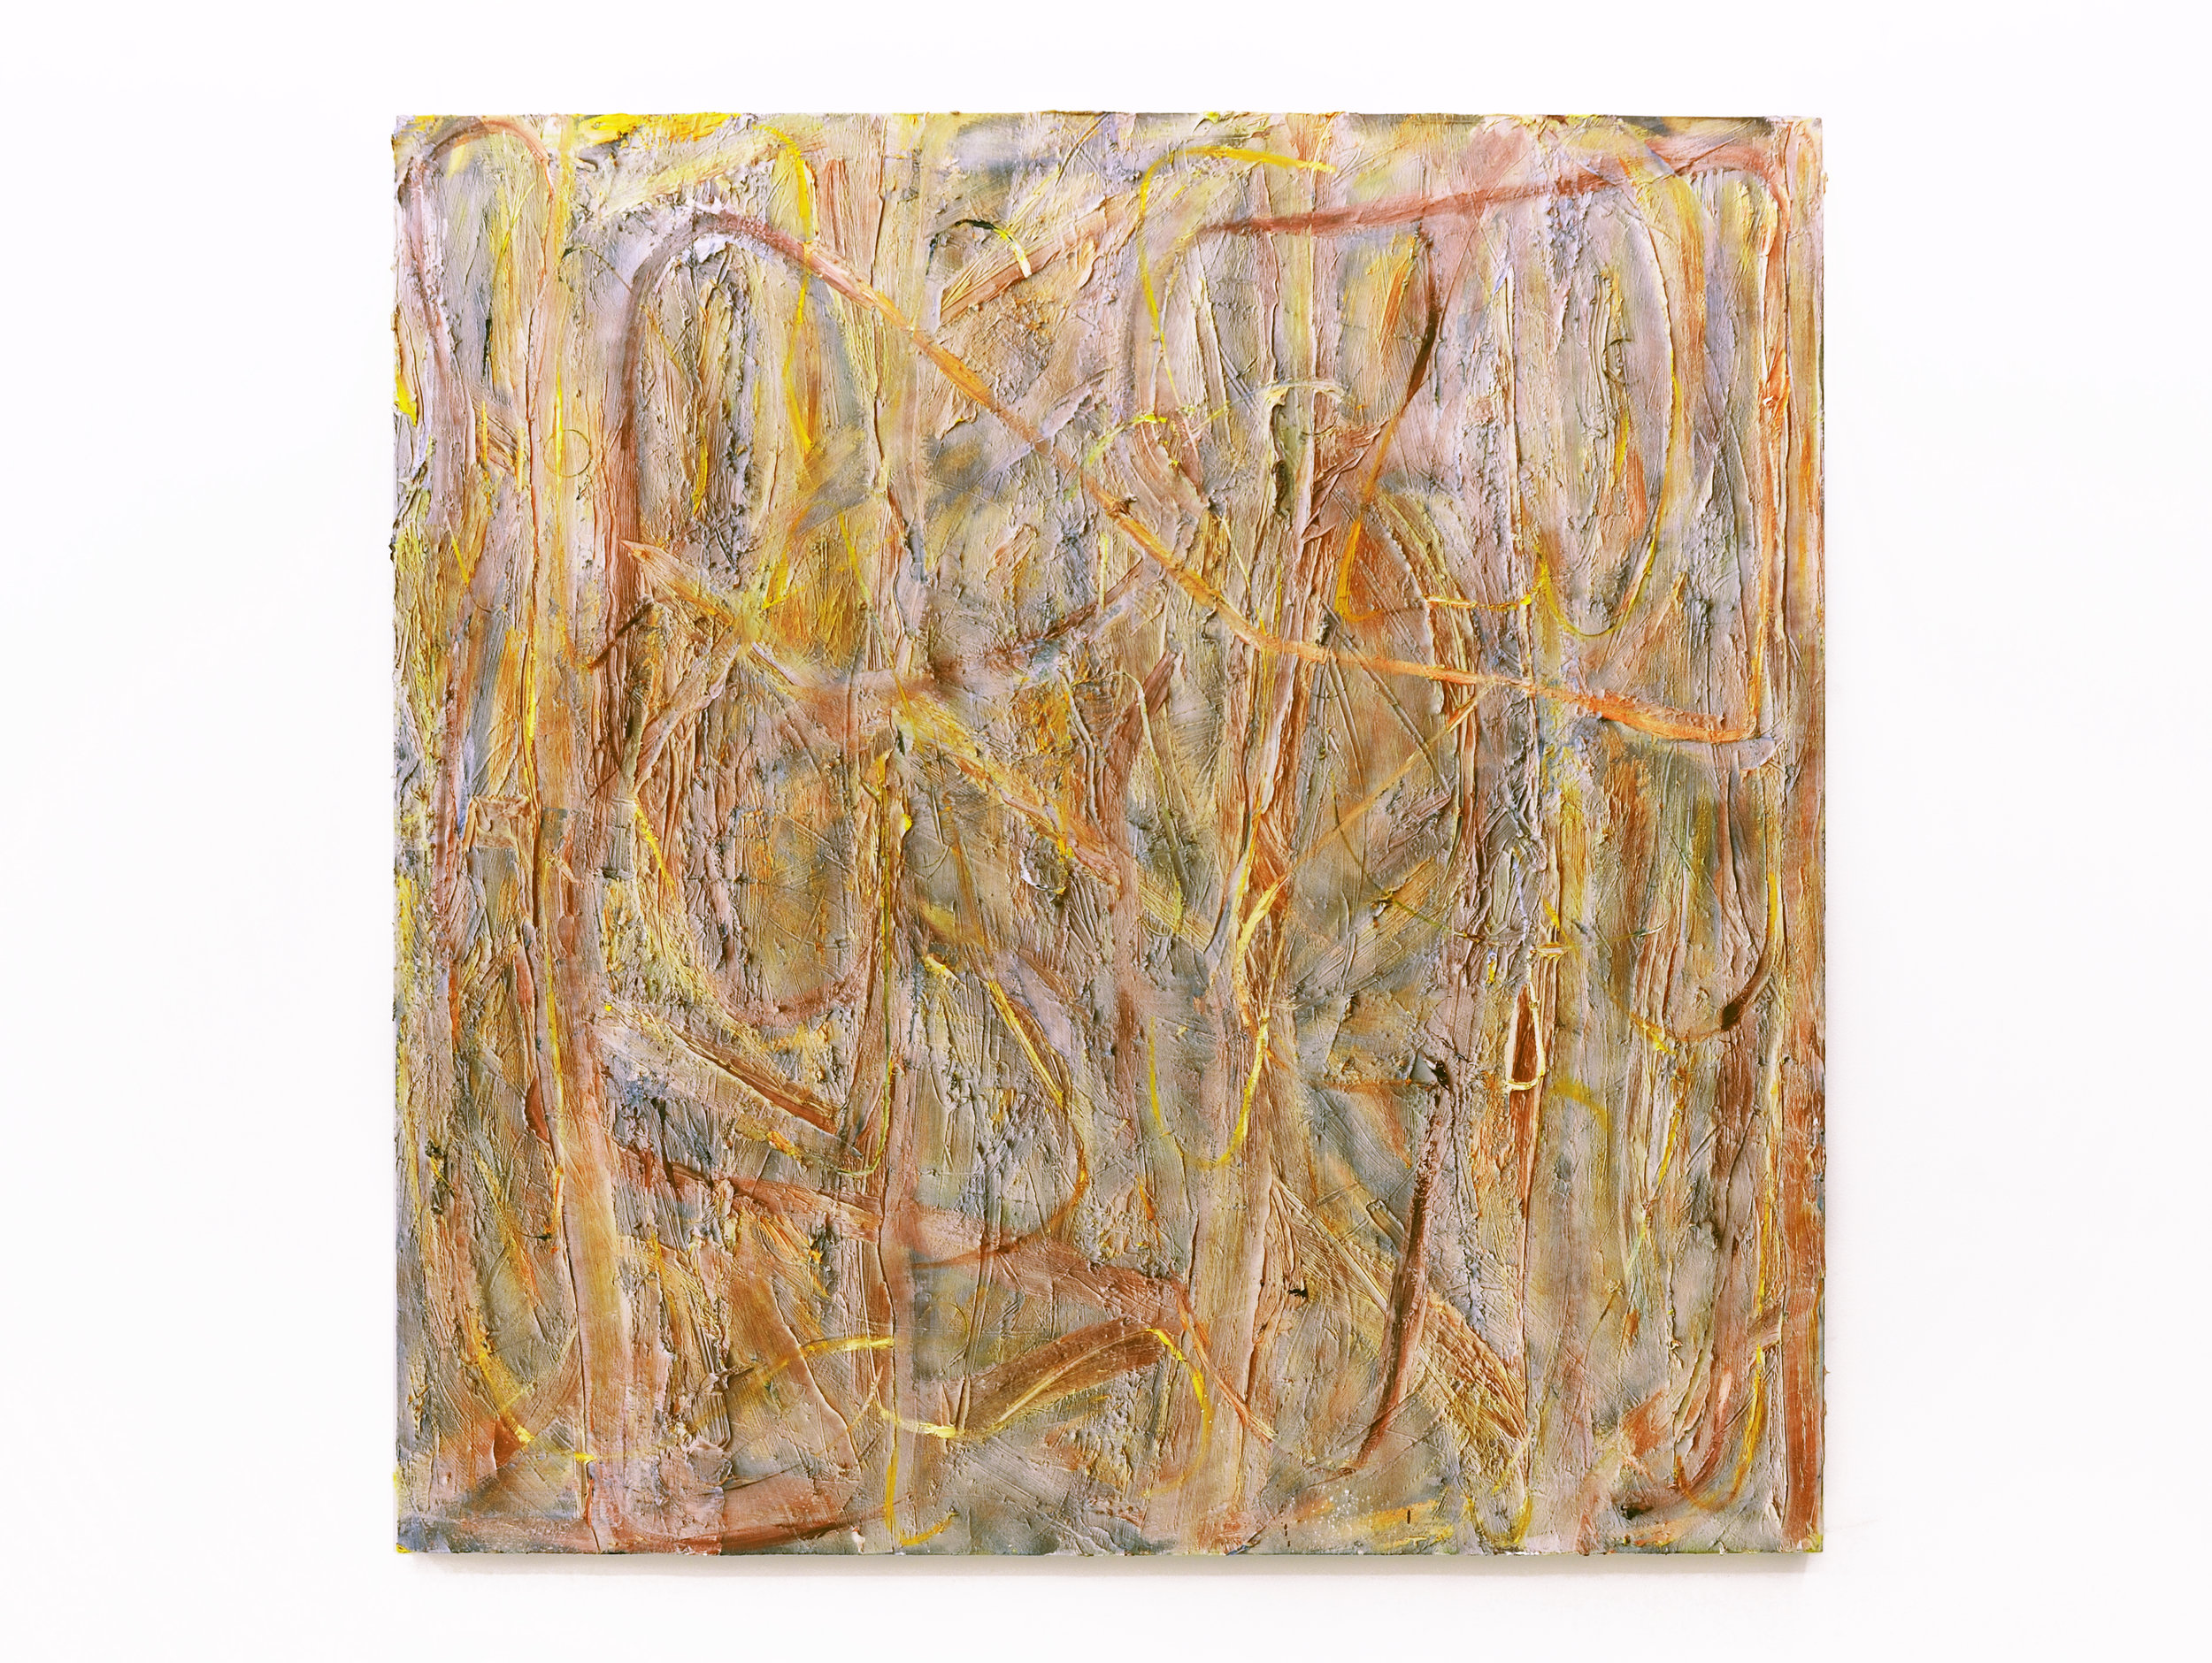 Pick, 2012 oil and spray paint on canvas 200 x 200 cm - 78 3/4 x 78 3/4 inches